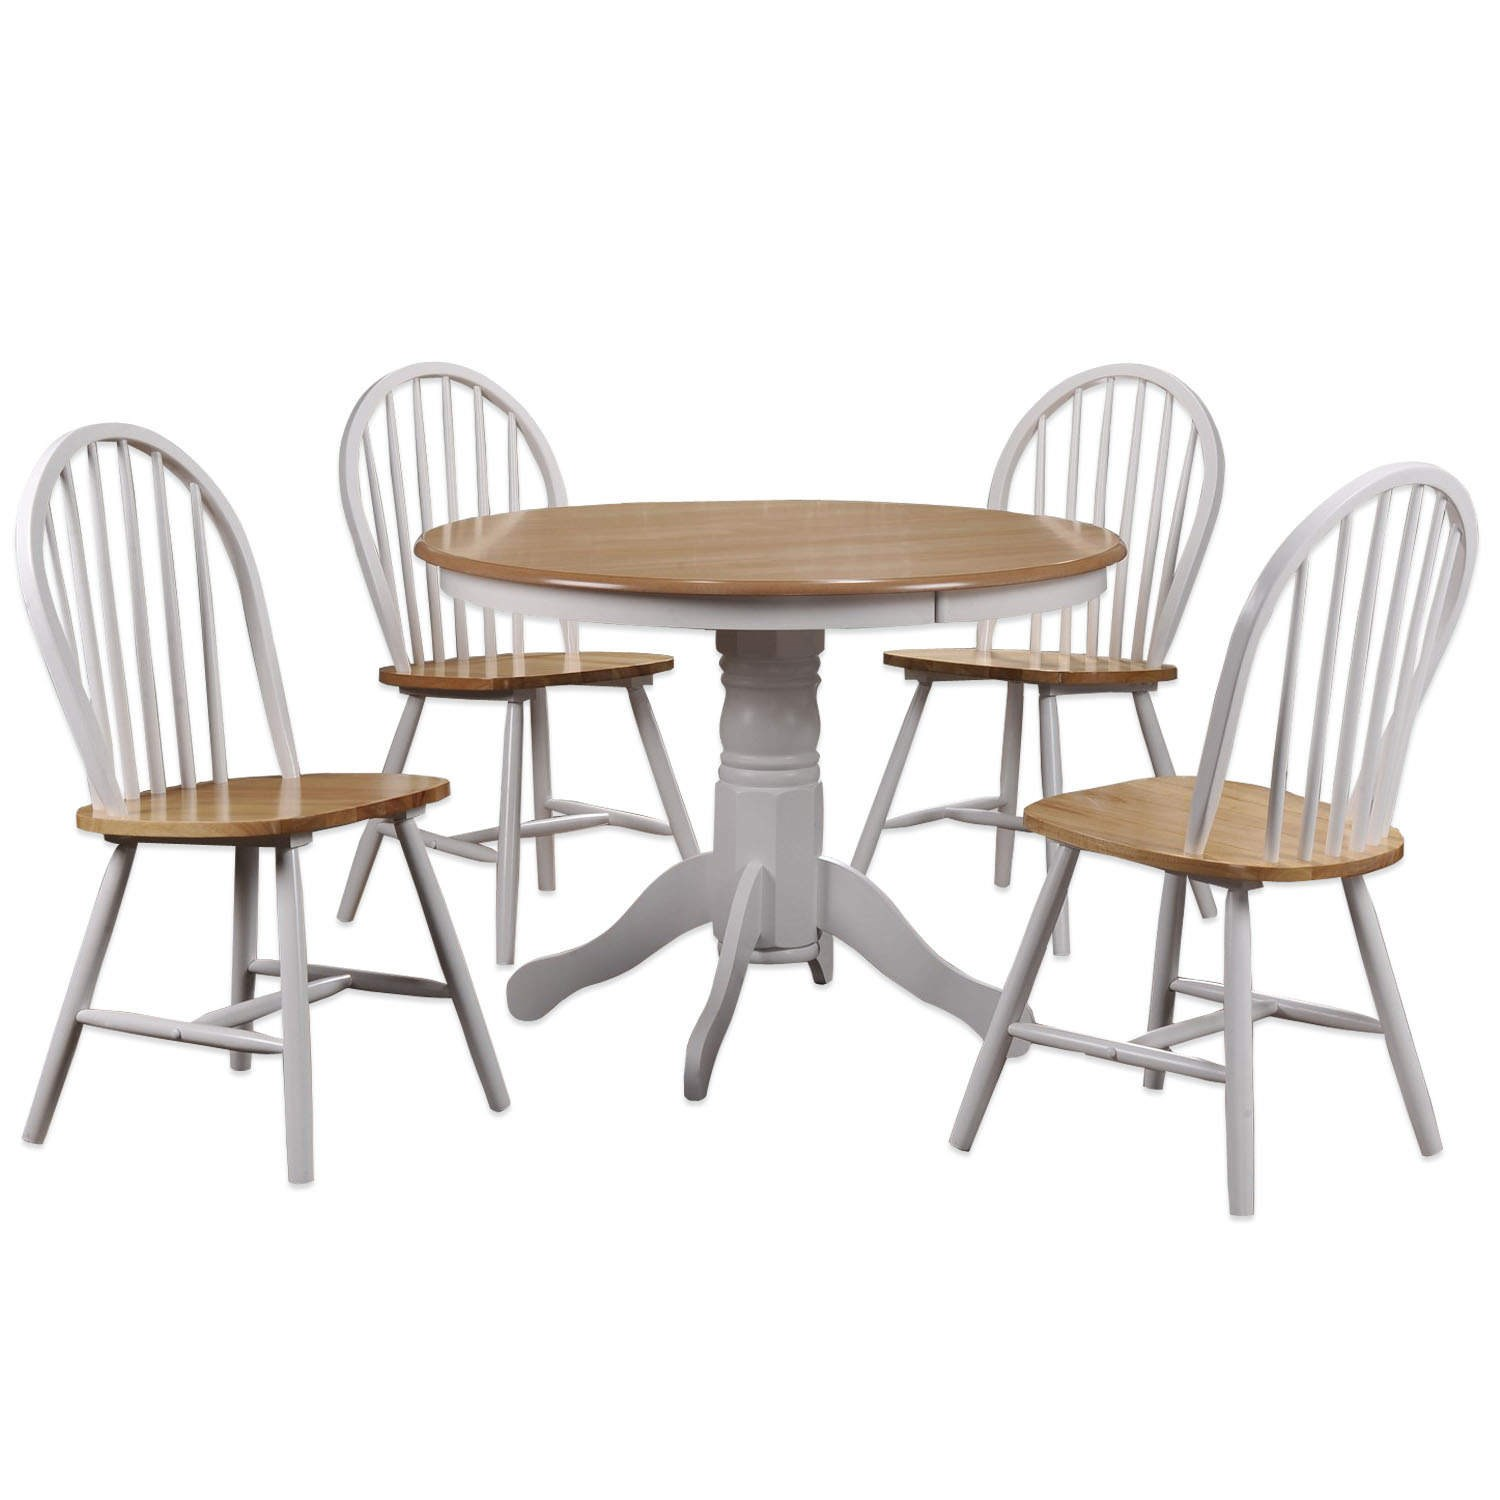 round solid wood dining table and 4 chairs ebay